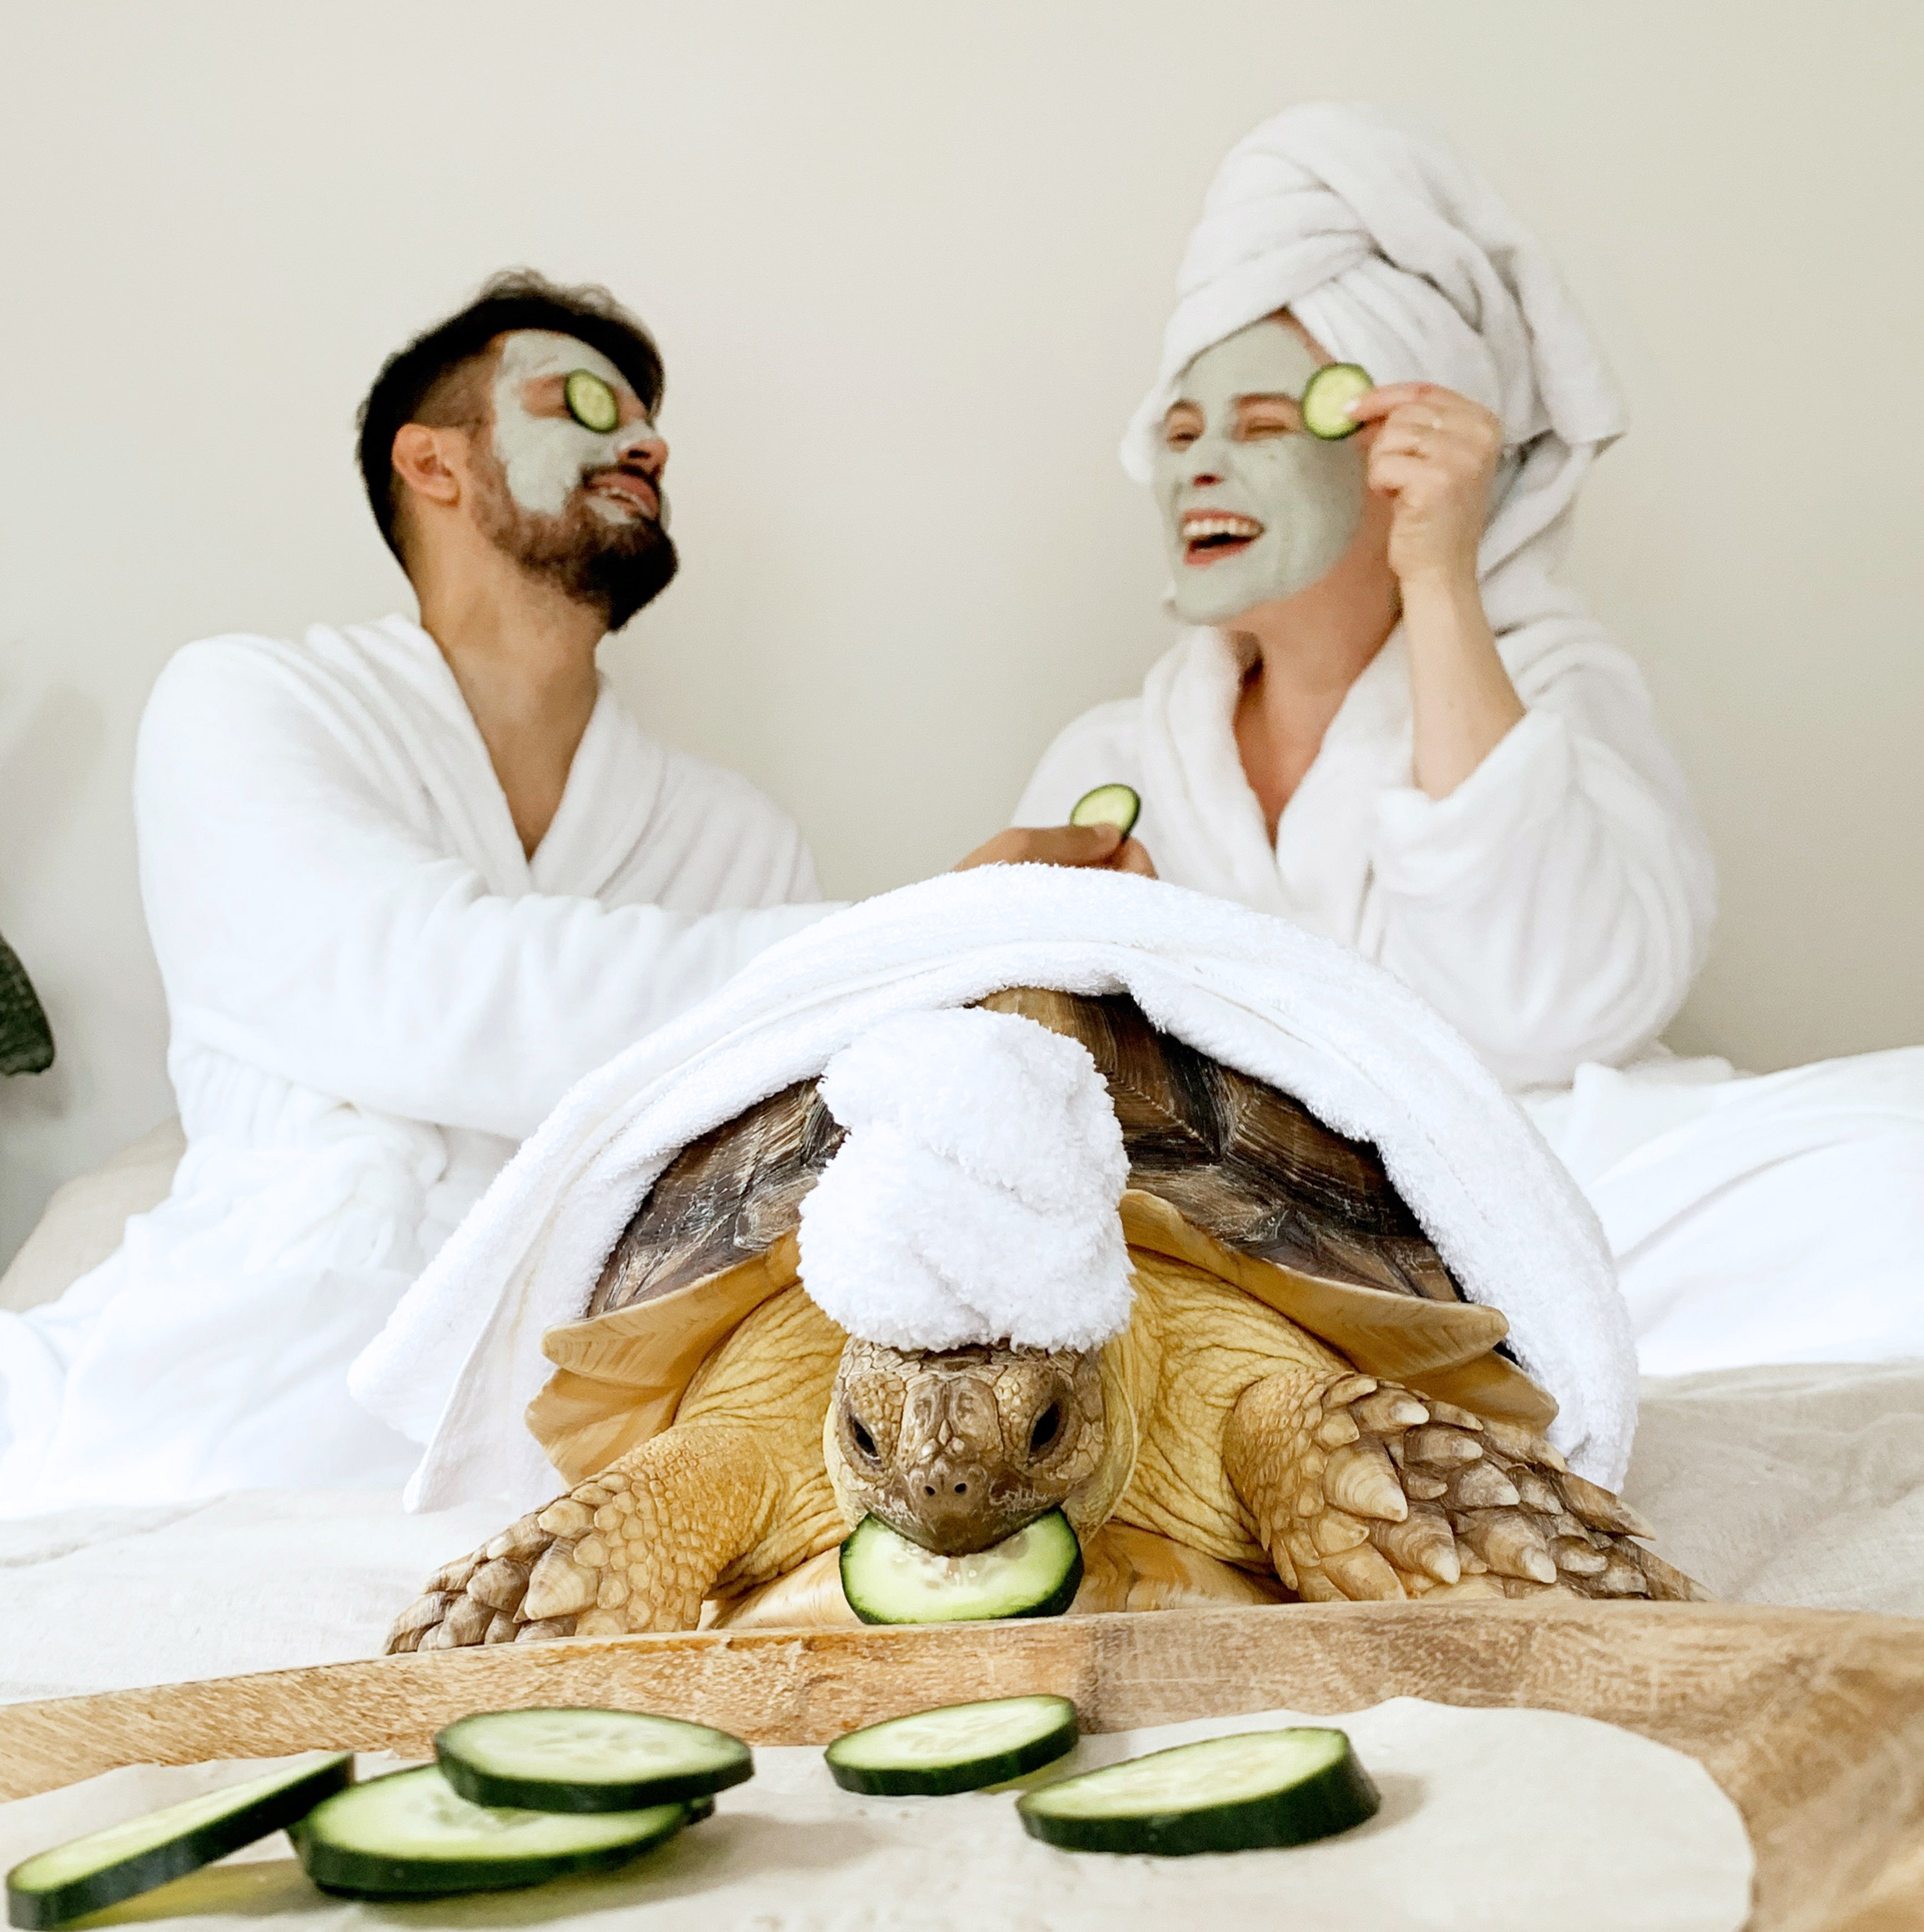 Couple dress their tortoise in matching spa day outfit